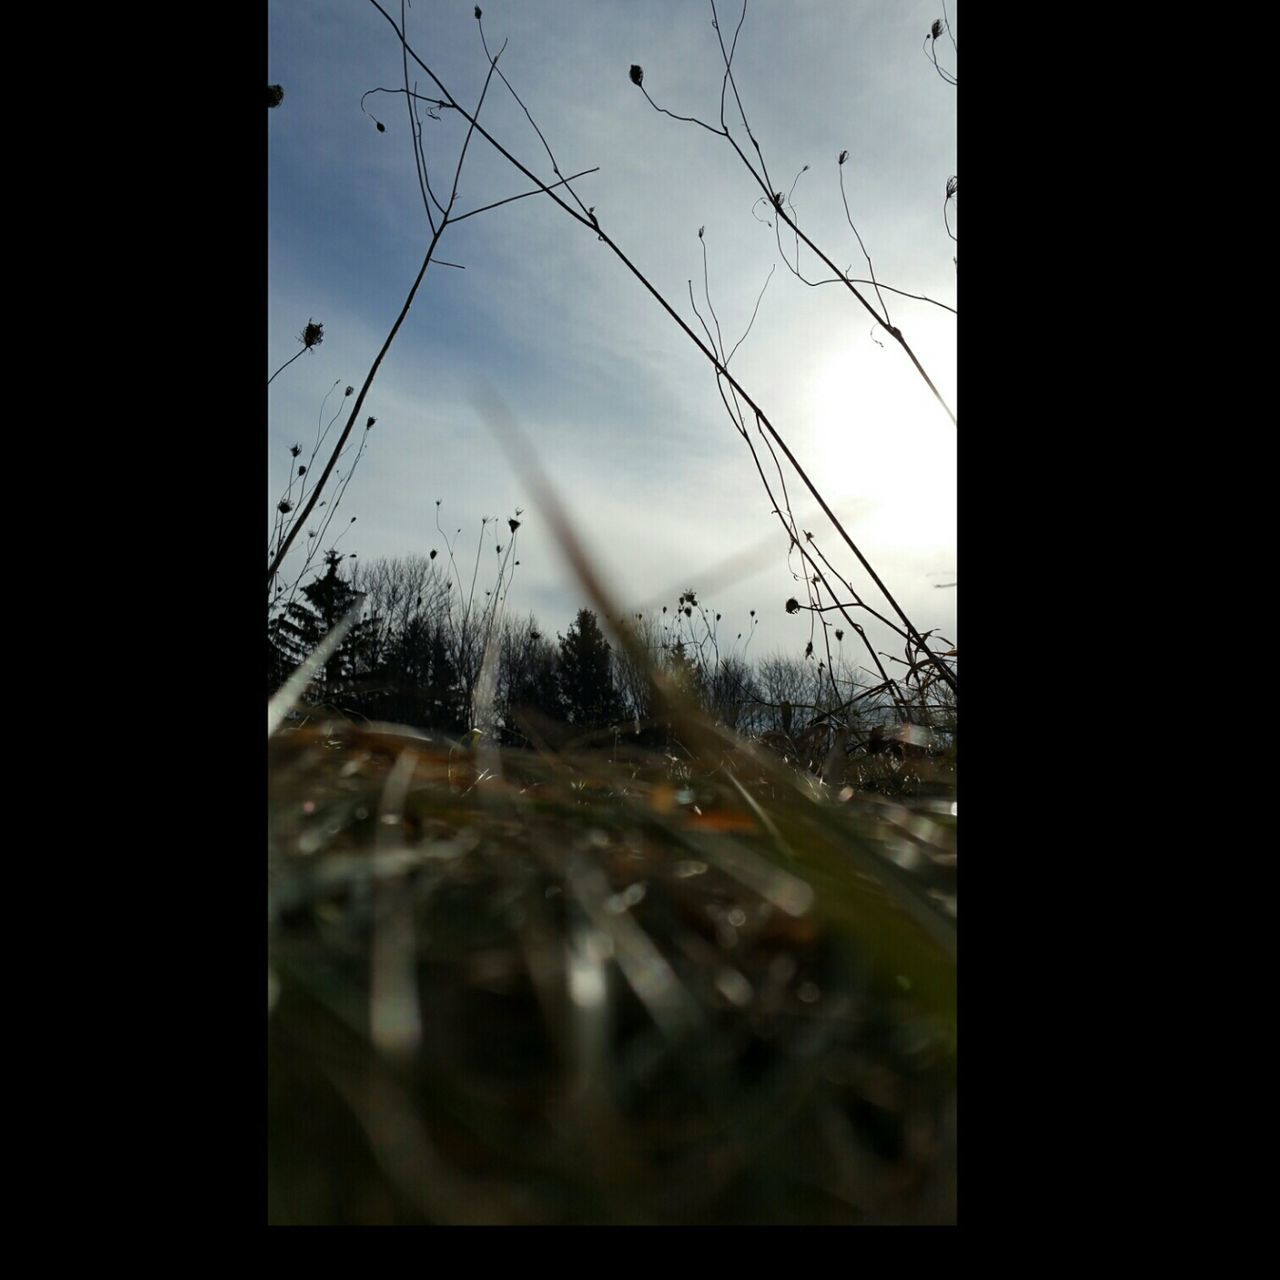 transparent, glass - material, window, sky, weather, nature, wet, transportation, windshield, no people, looking through window, day, reflection, cold temperature, outdoors, winter, tree, close-up, bare tree, water, fragility, beauty in nature, freshness